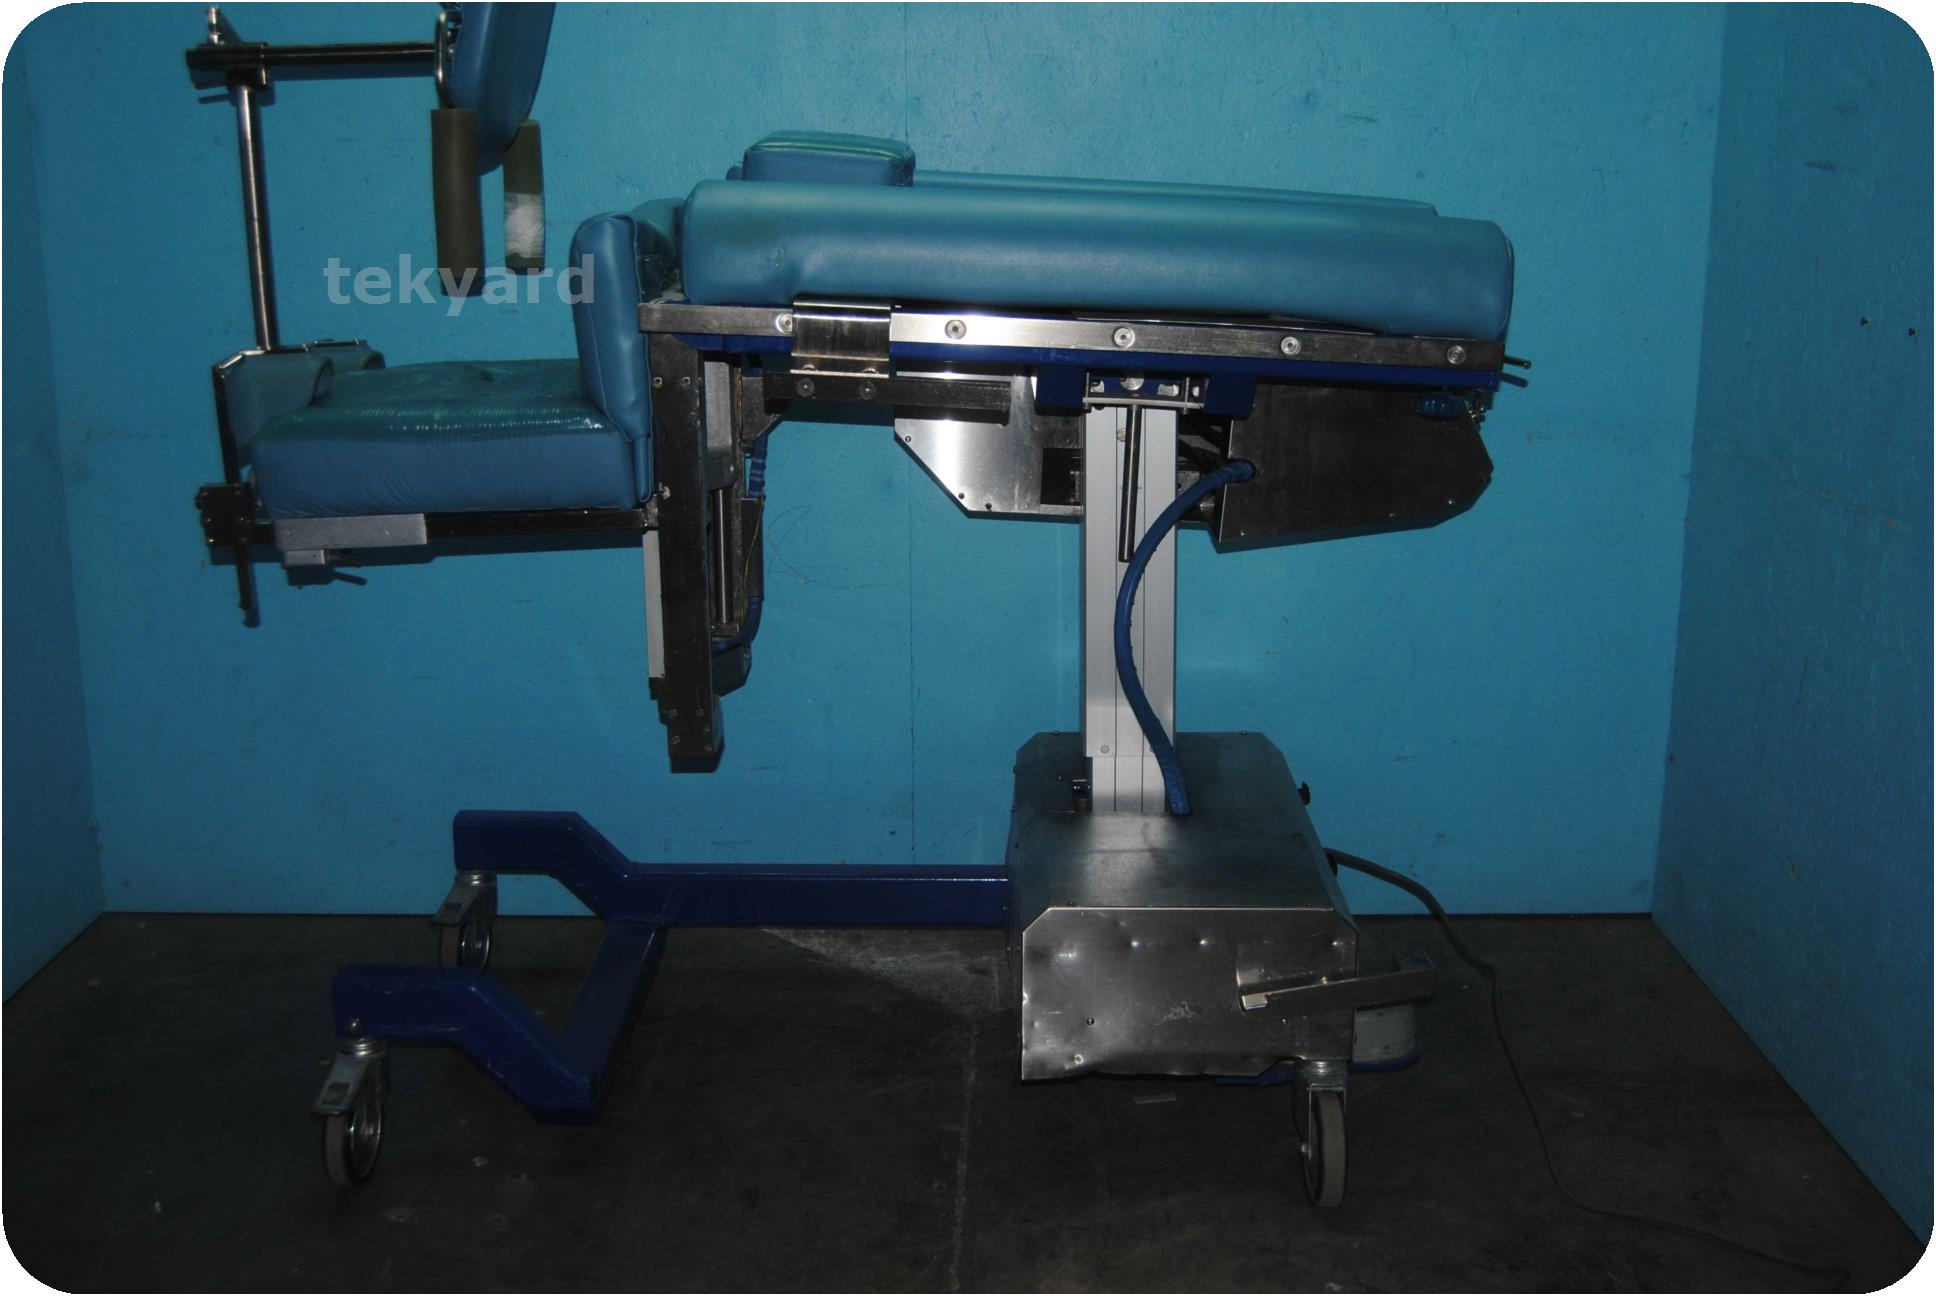 best chair after back surgery portable outdoor chairs osi sst 3000 manual o r or operating room andrews spinal